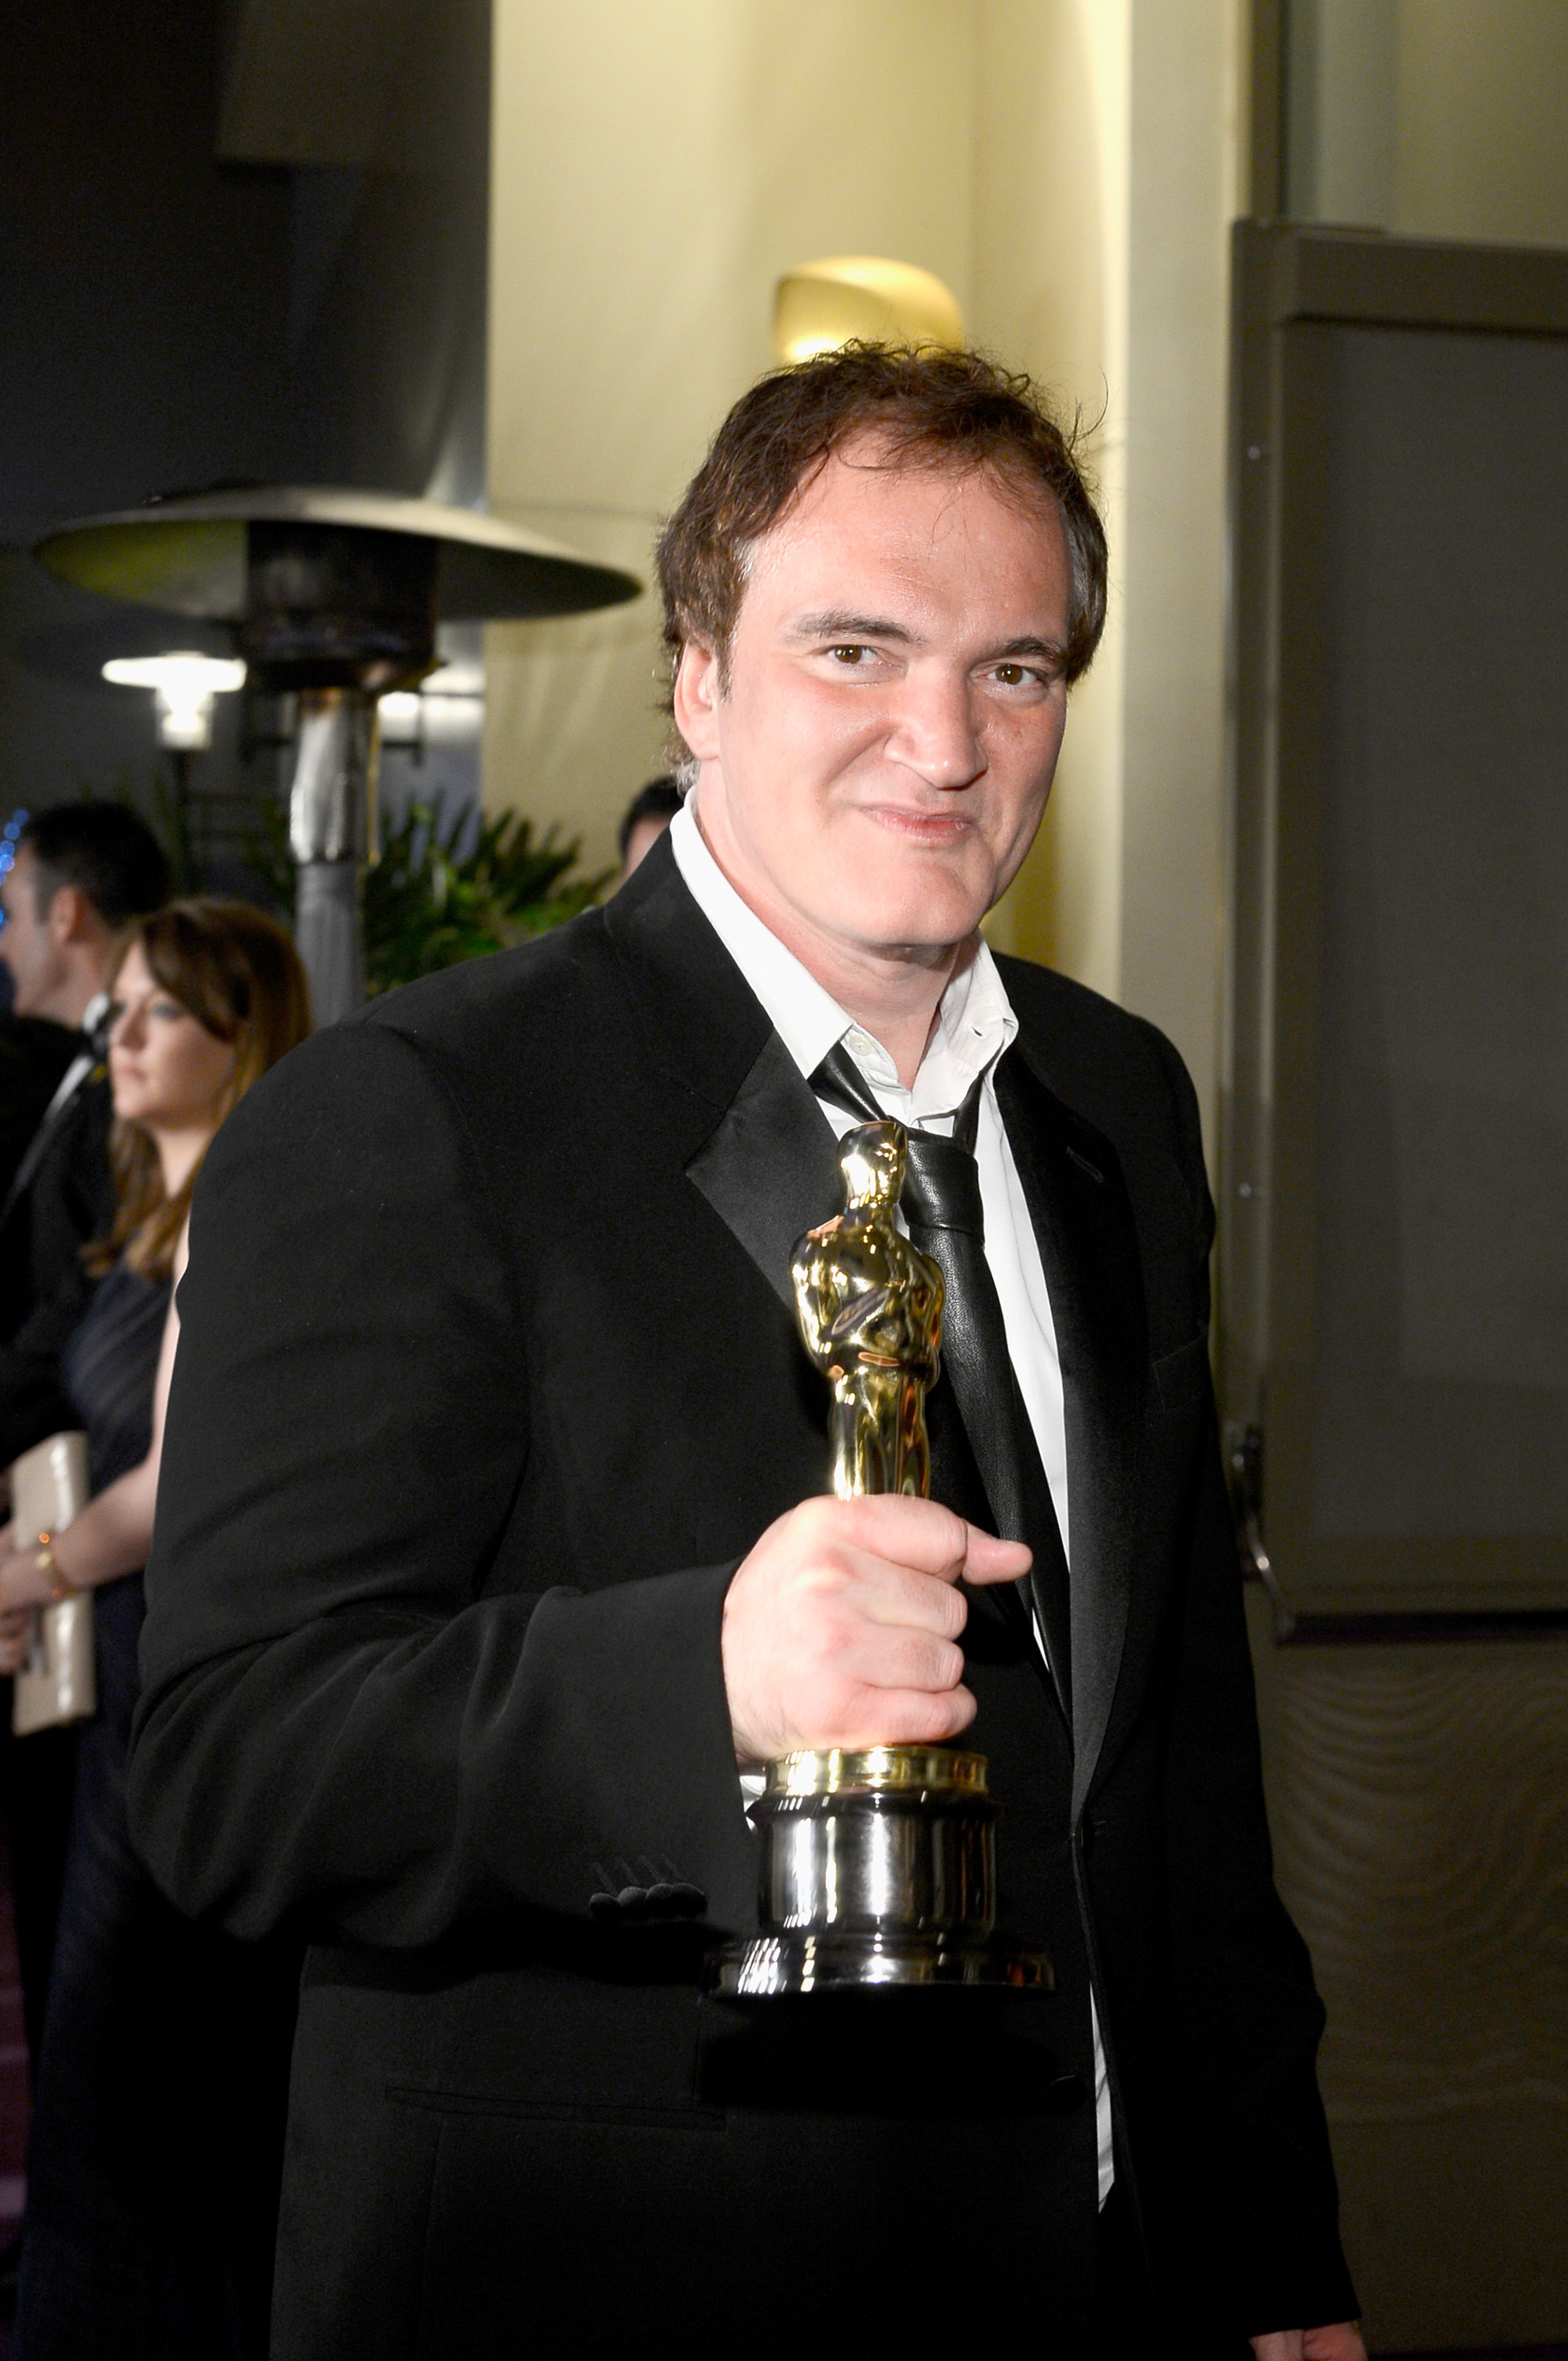 Quentin Tarantino held up his Oscar at the Governors Ball.